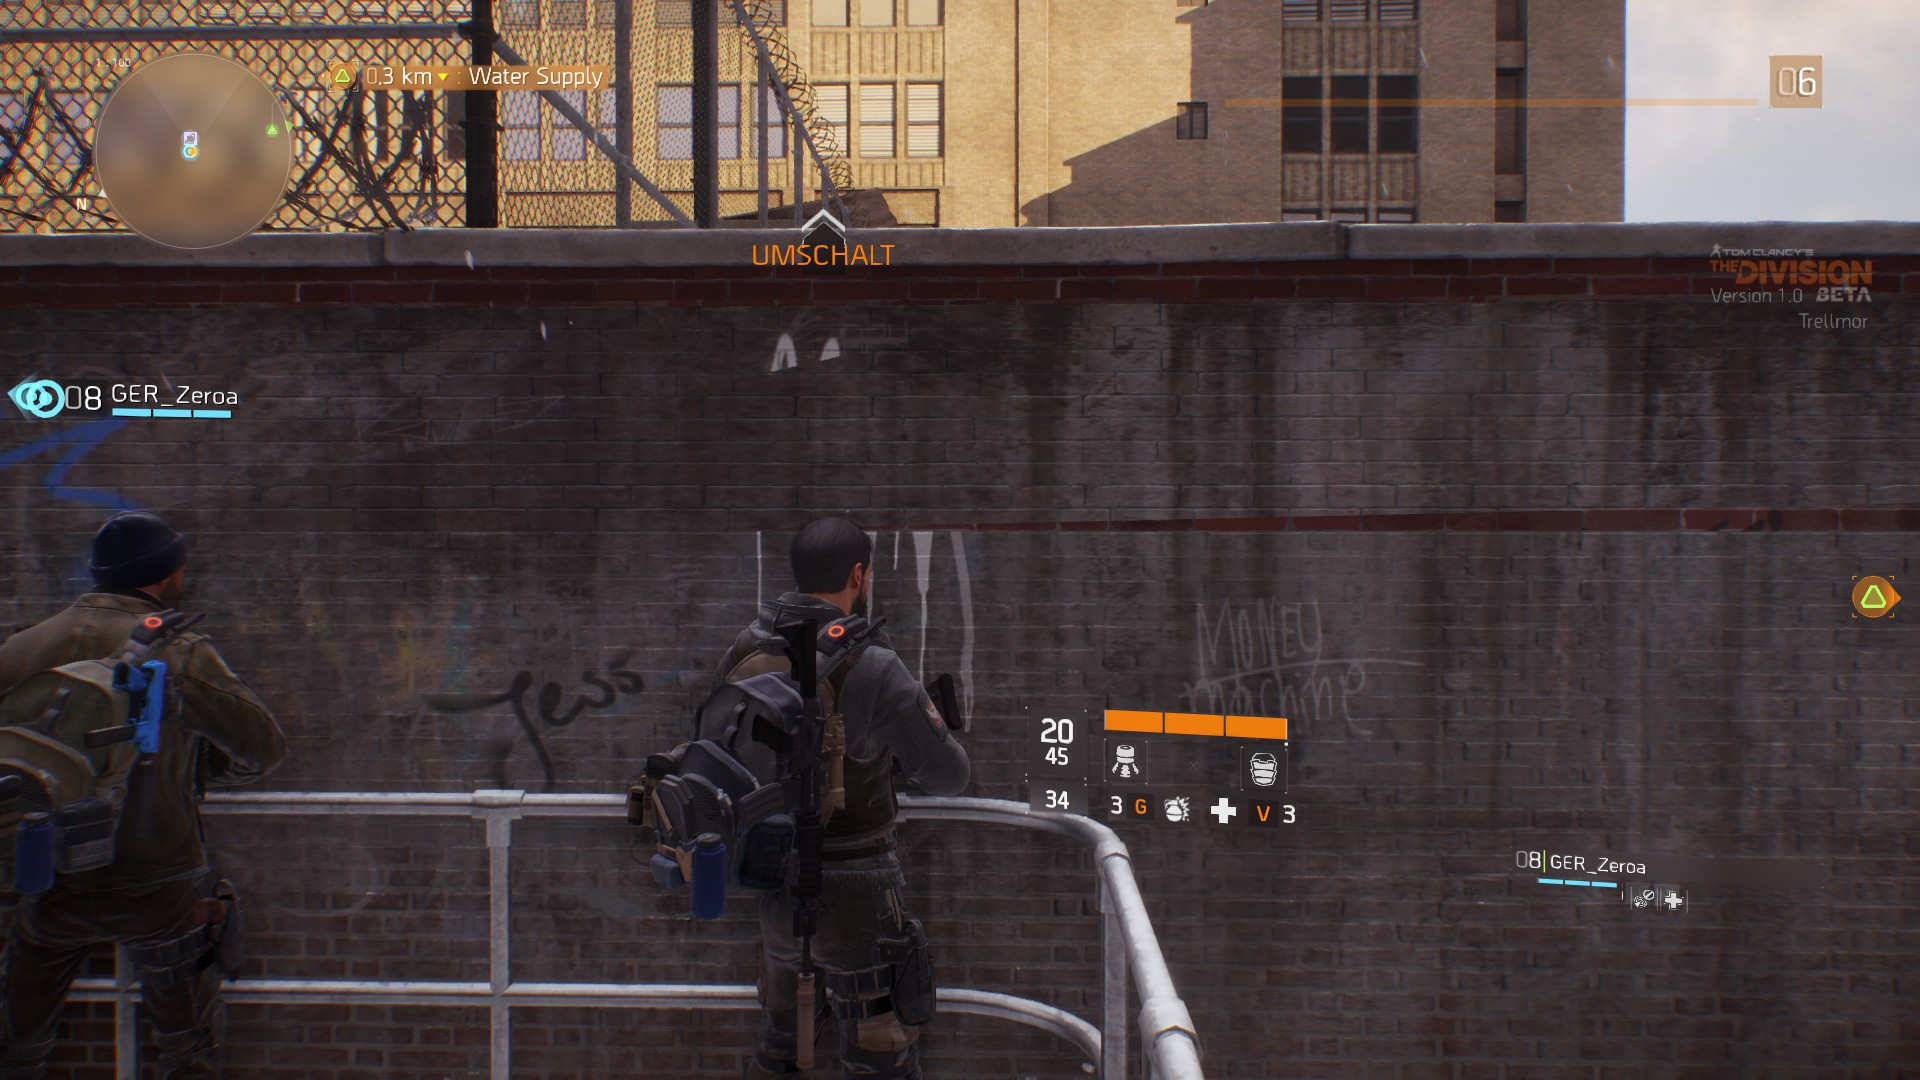 Tom Clancy's The Division Beta2016-1-30-18-35-17.jpg